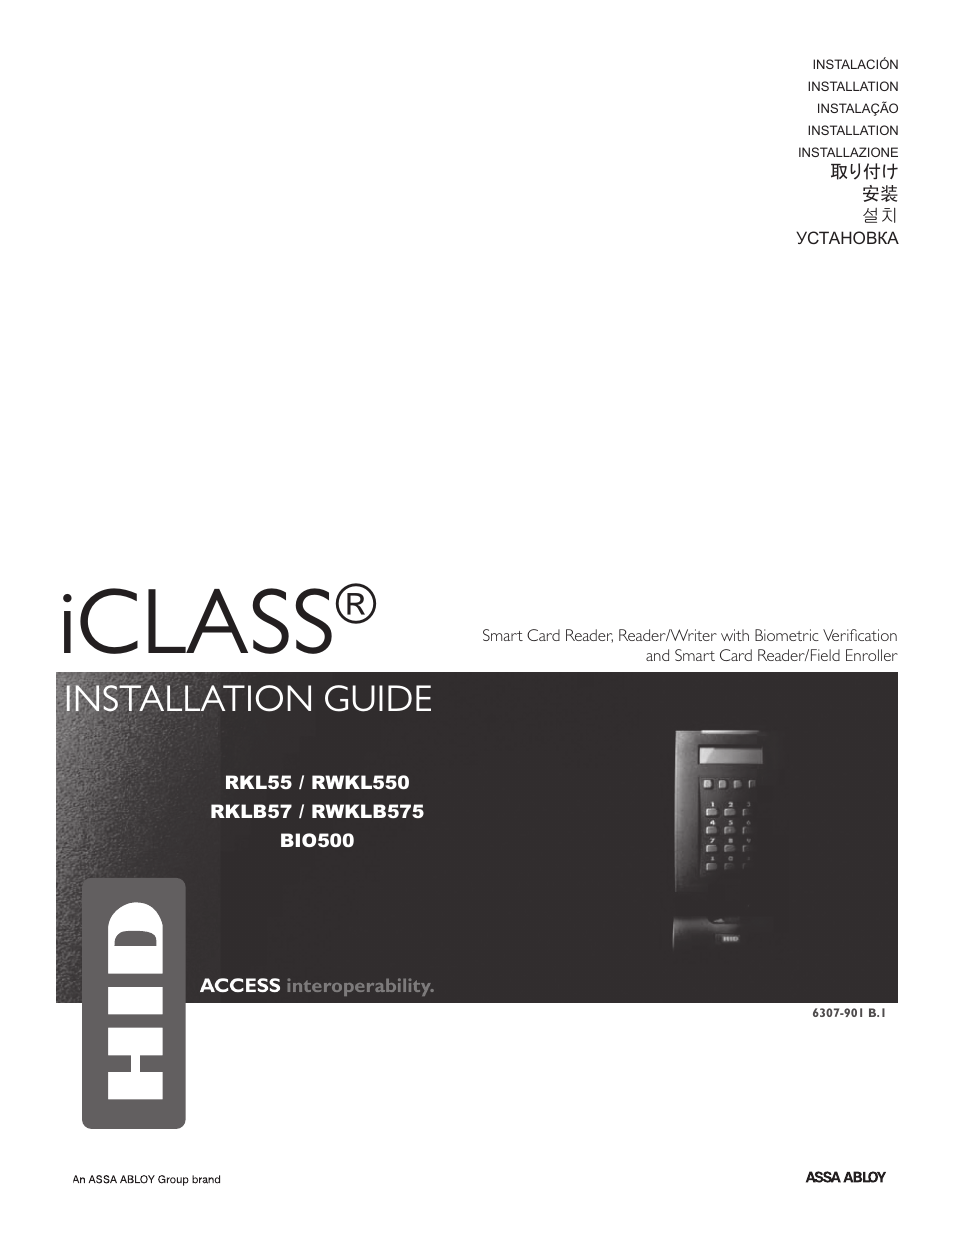 Hid Bioclass Installation Guide User Manual 12 Pages Access Wiring Diagram